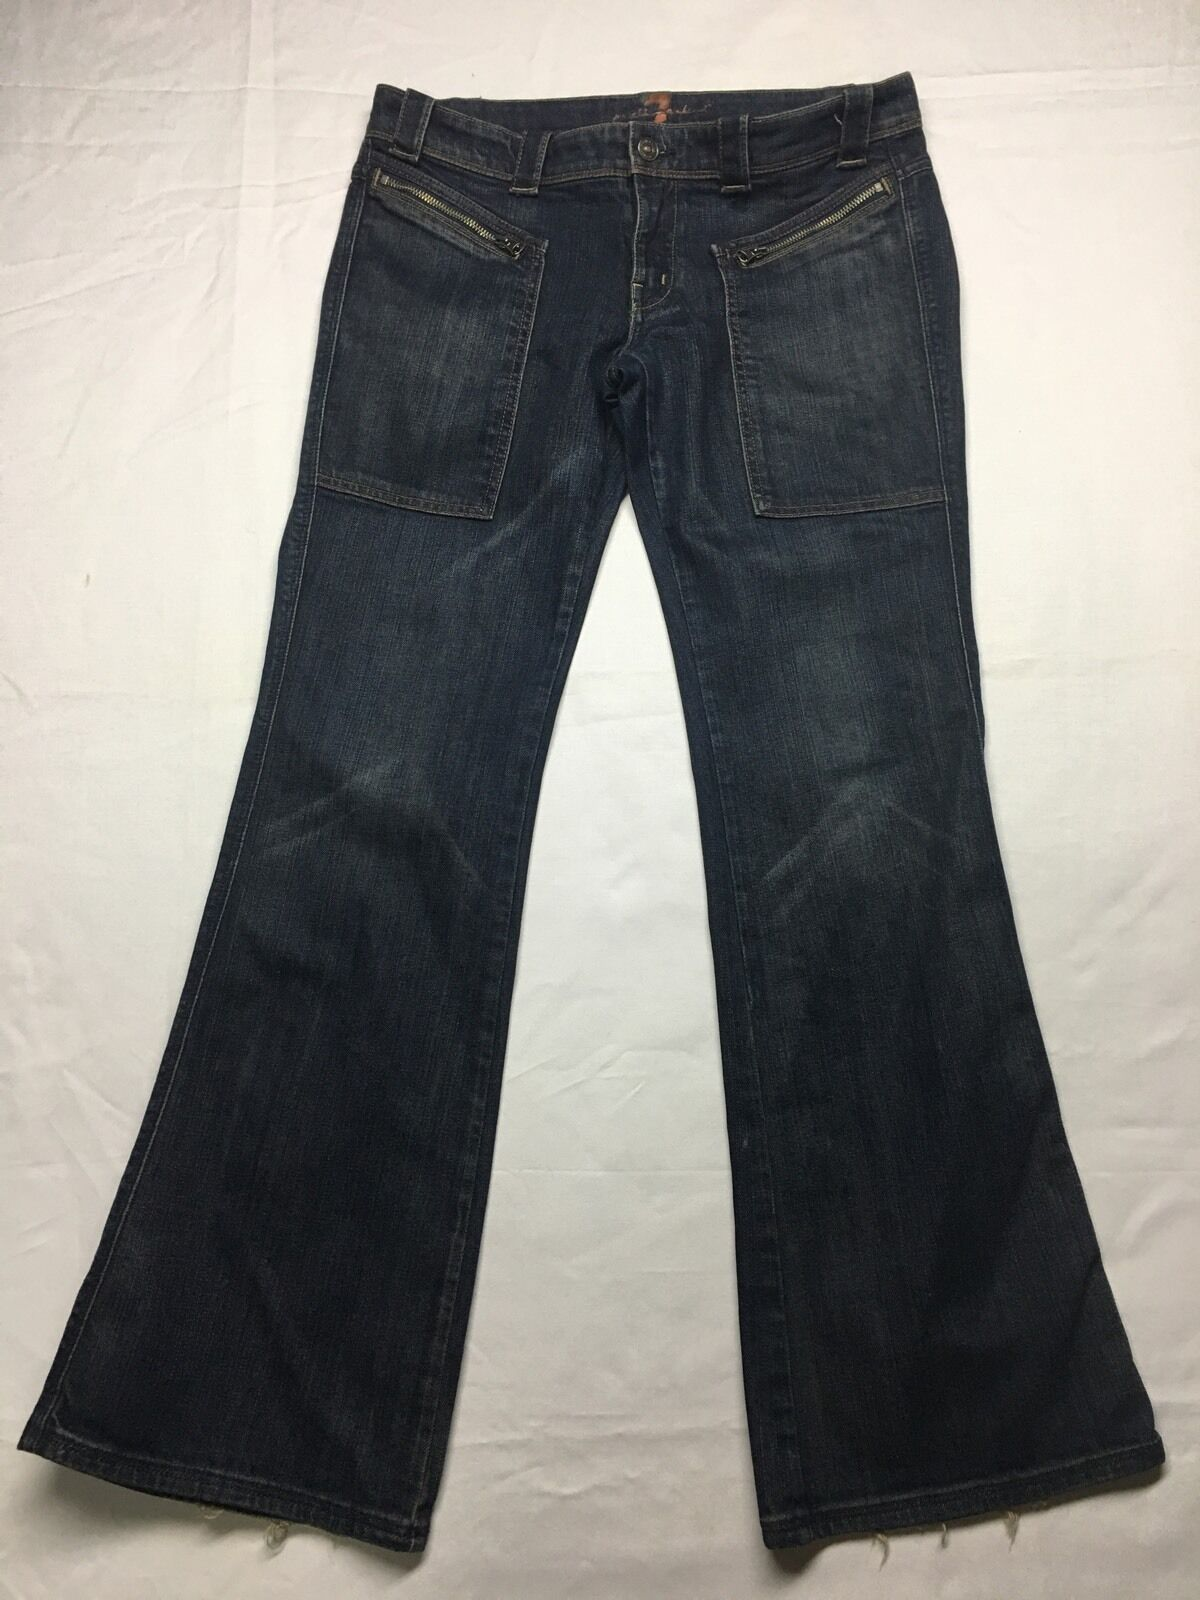 7 For All Mankind Jeans Stretch Bootcut Women's Size 30